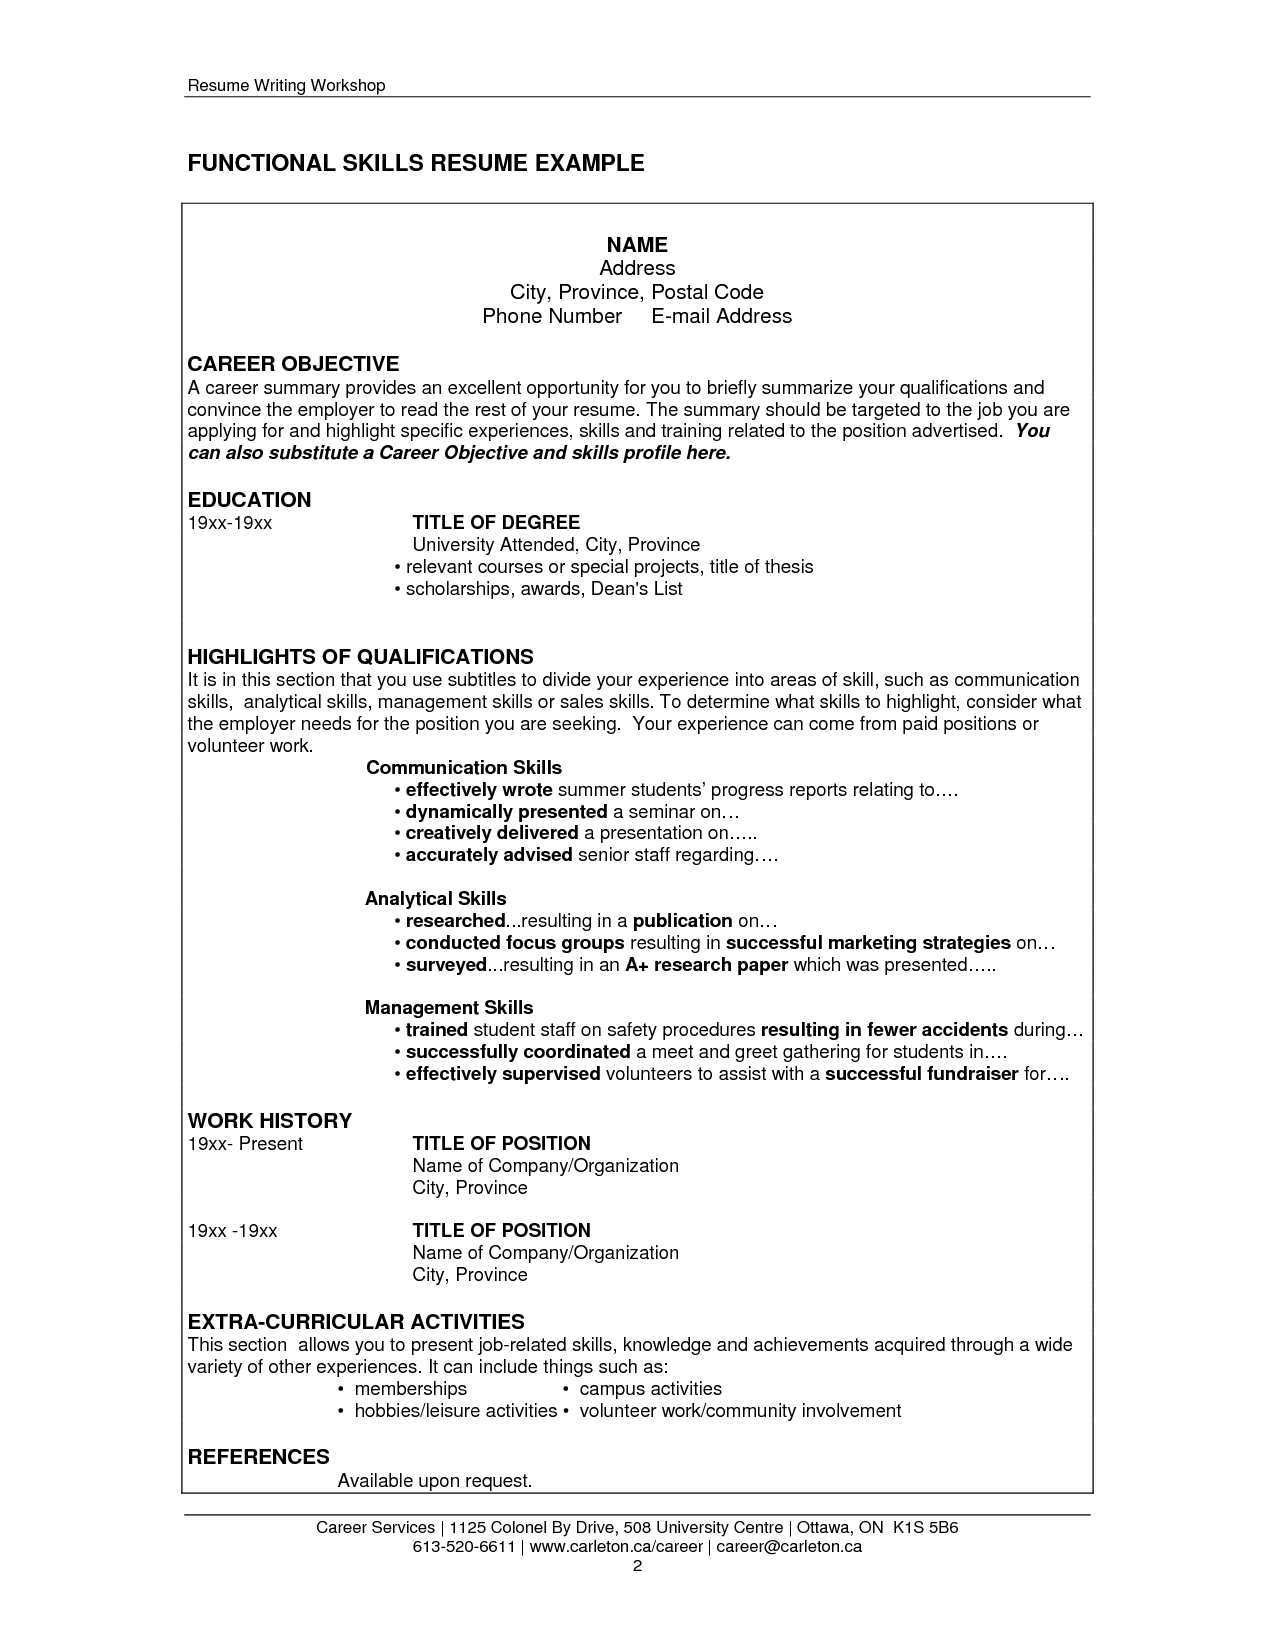 Profile Resume Sample Cover Letter Chief Executive Officer Examples Skills Professional Skill Example Resume Skills Section Resume Skills Good Resume Examples